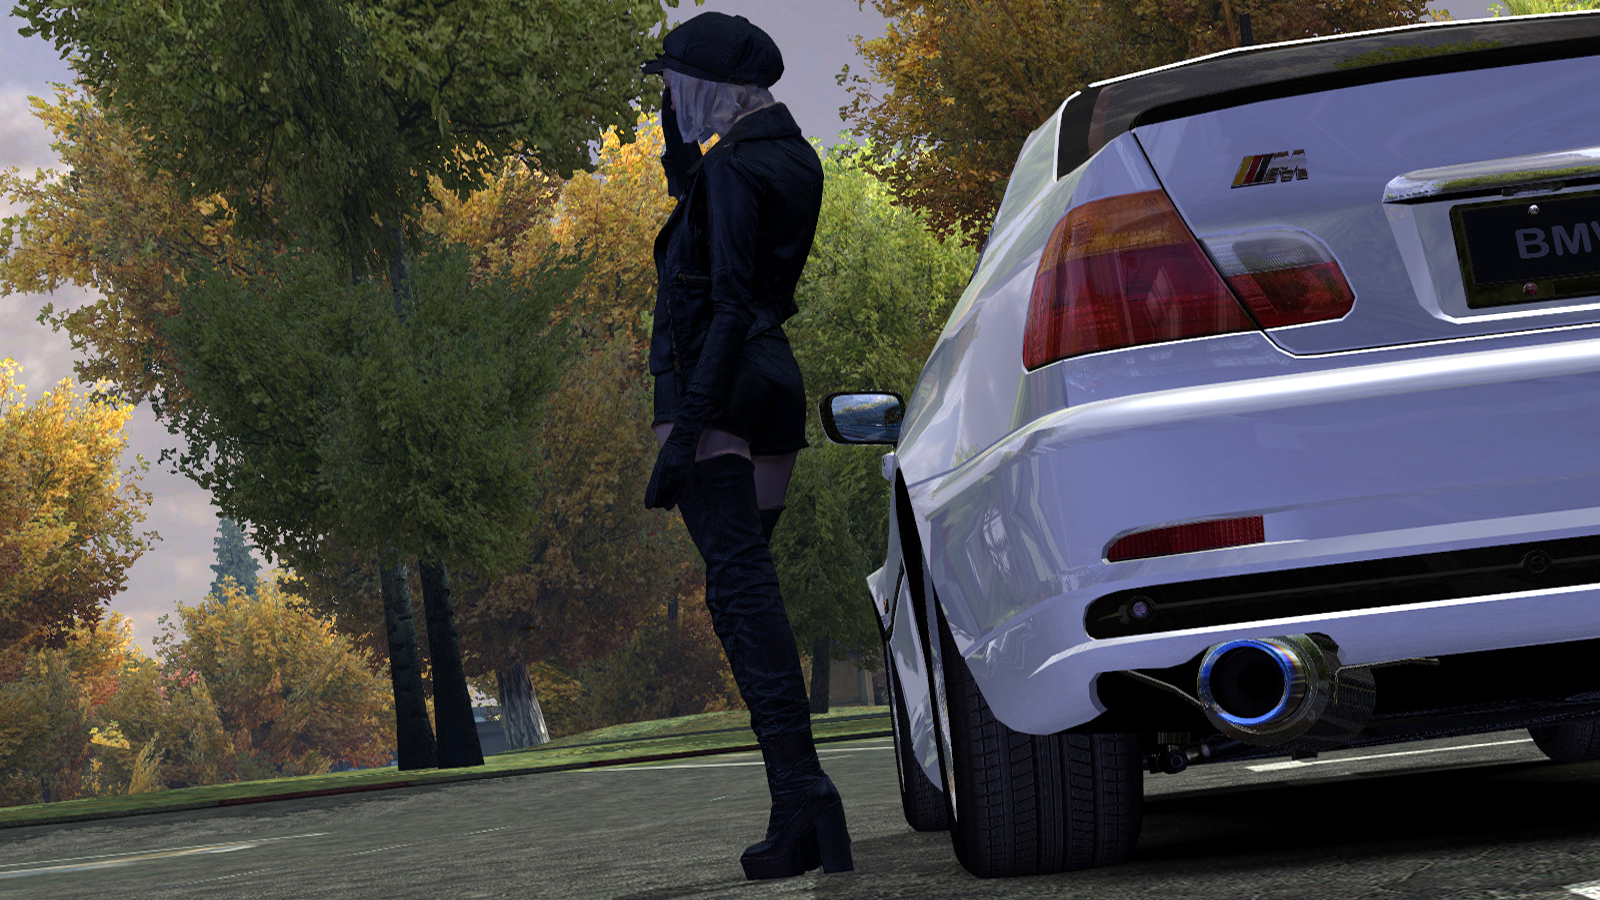 Speed 2020-11-07 05-05-51-005.jpg - Need for Speed: Most Wanted (2005)